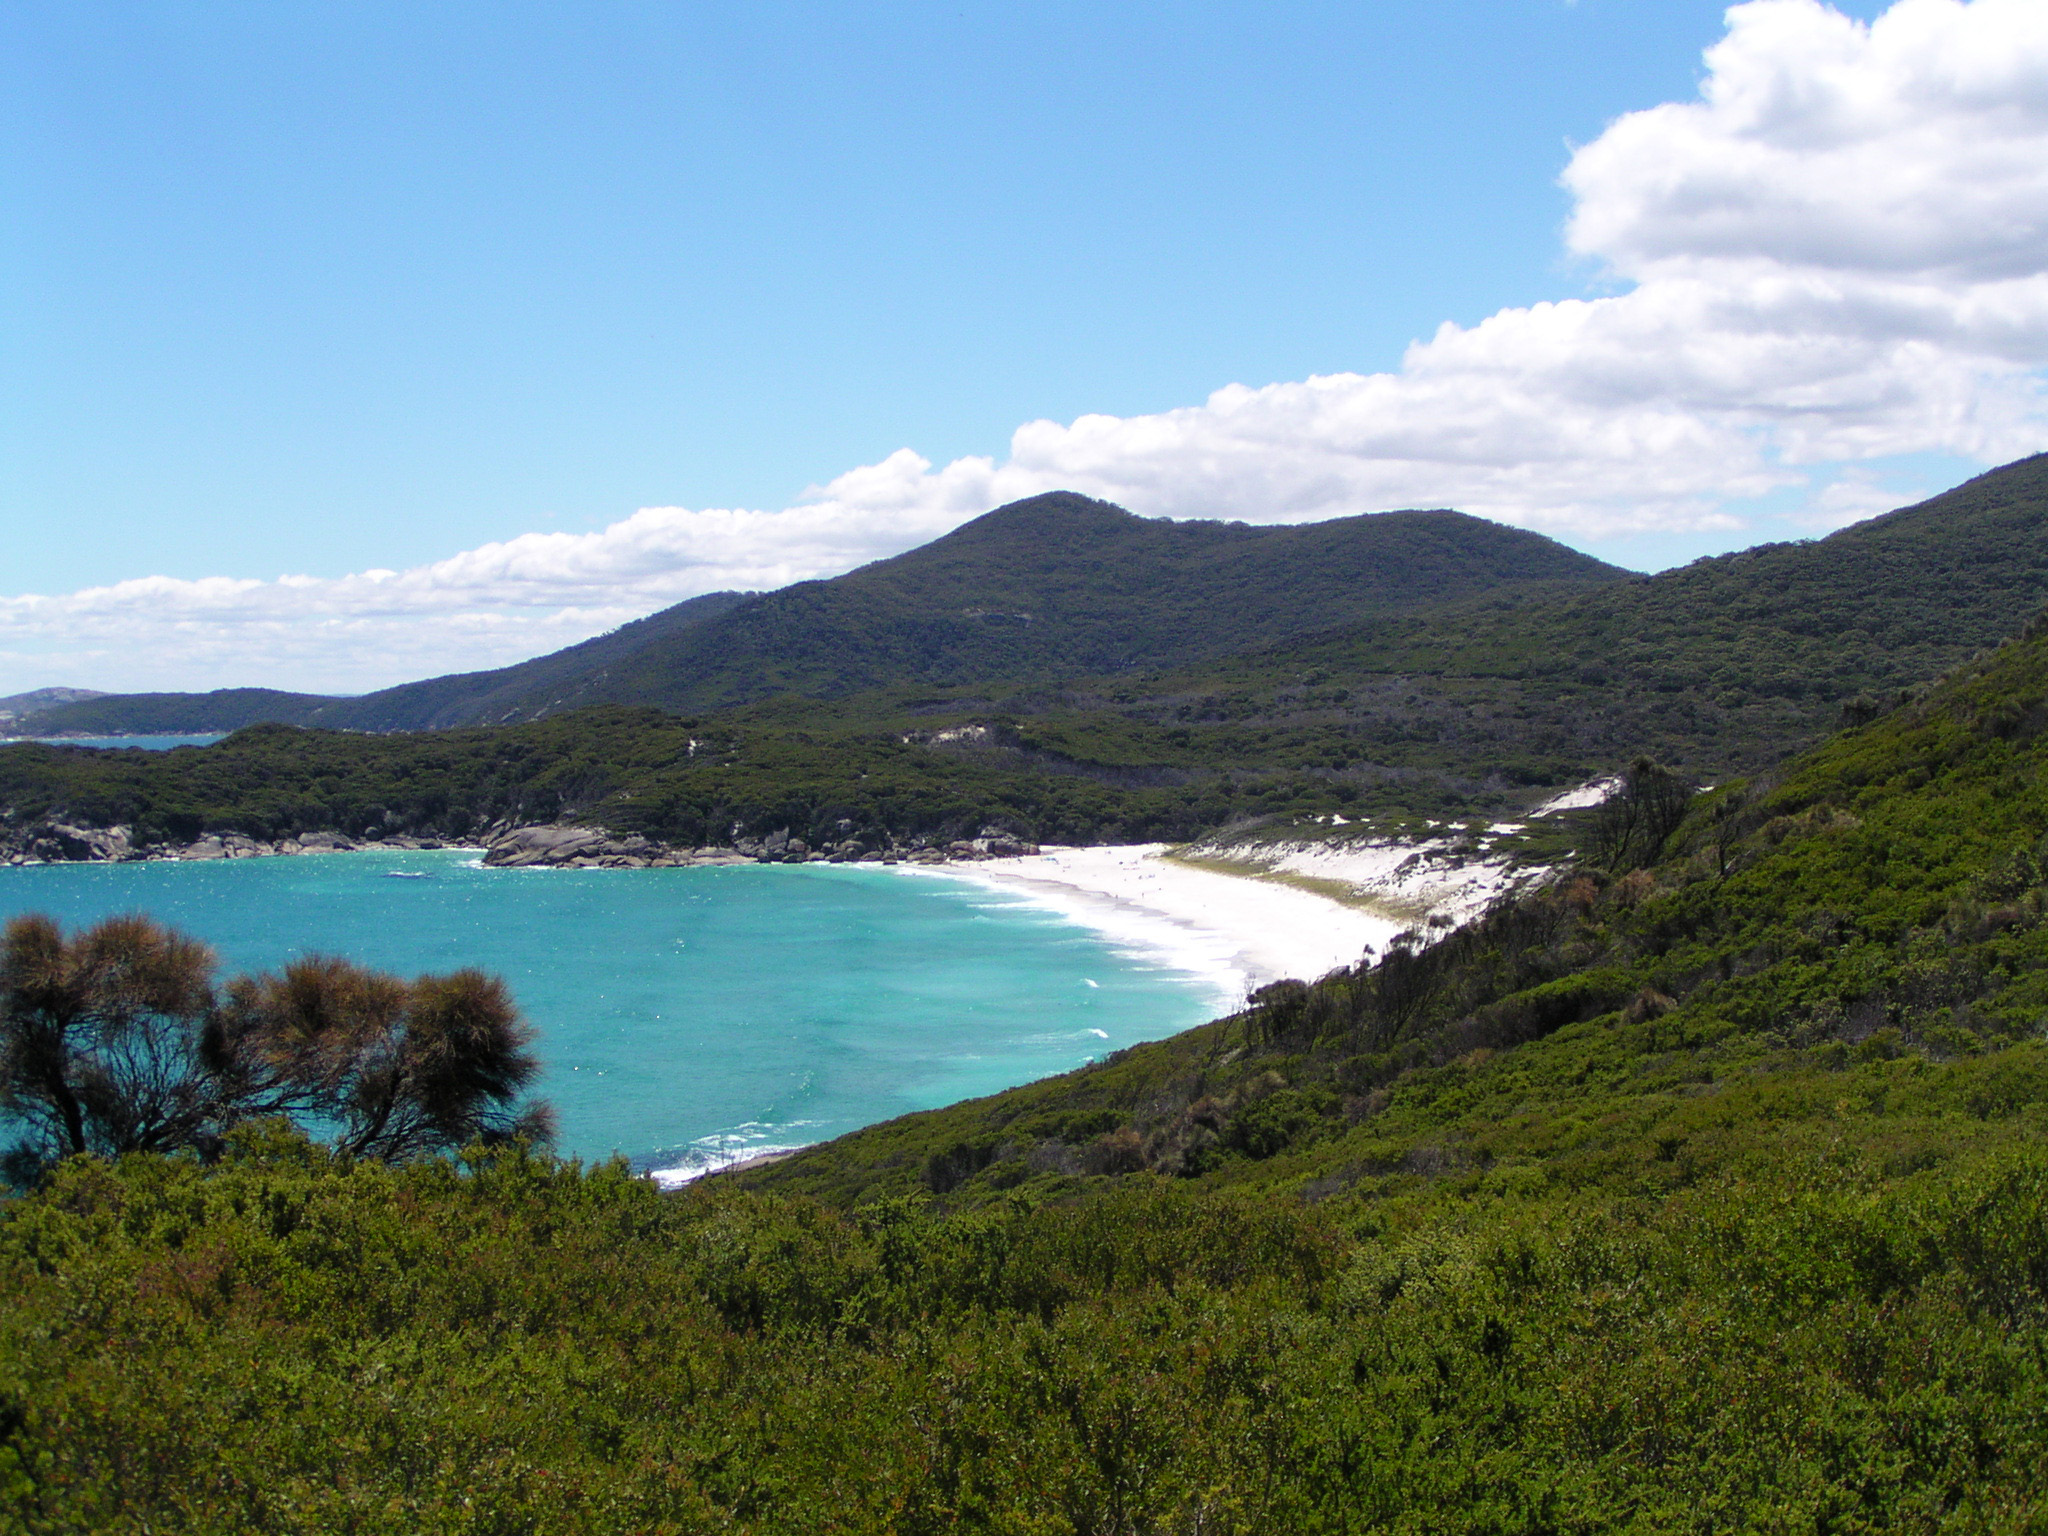 Wilsons Promontory - click to see an enlarged version of this image